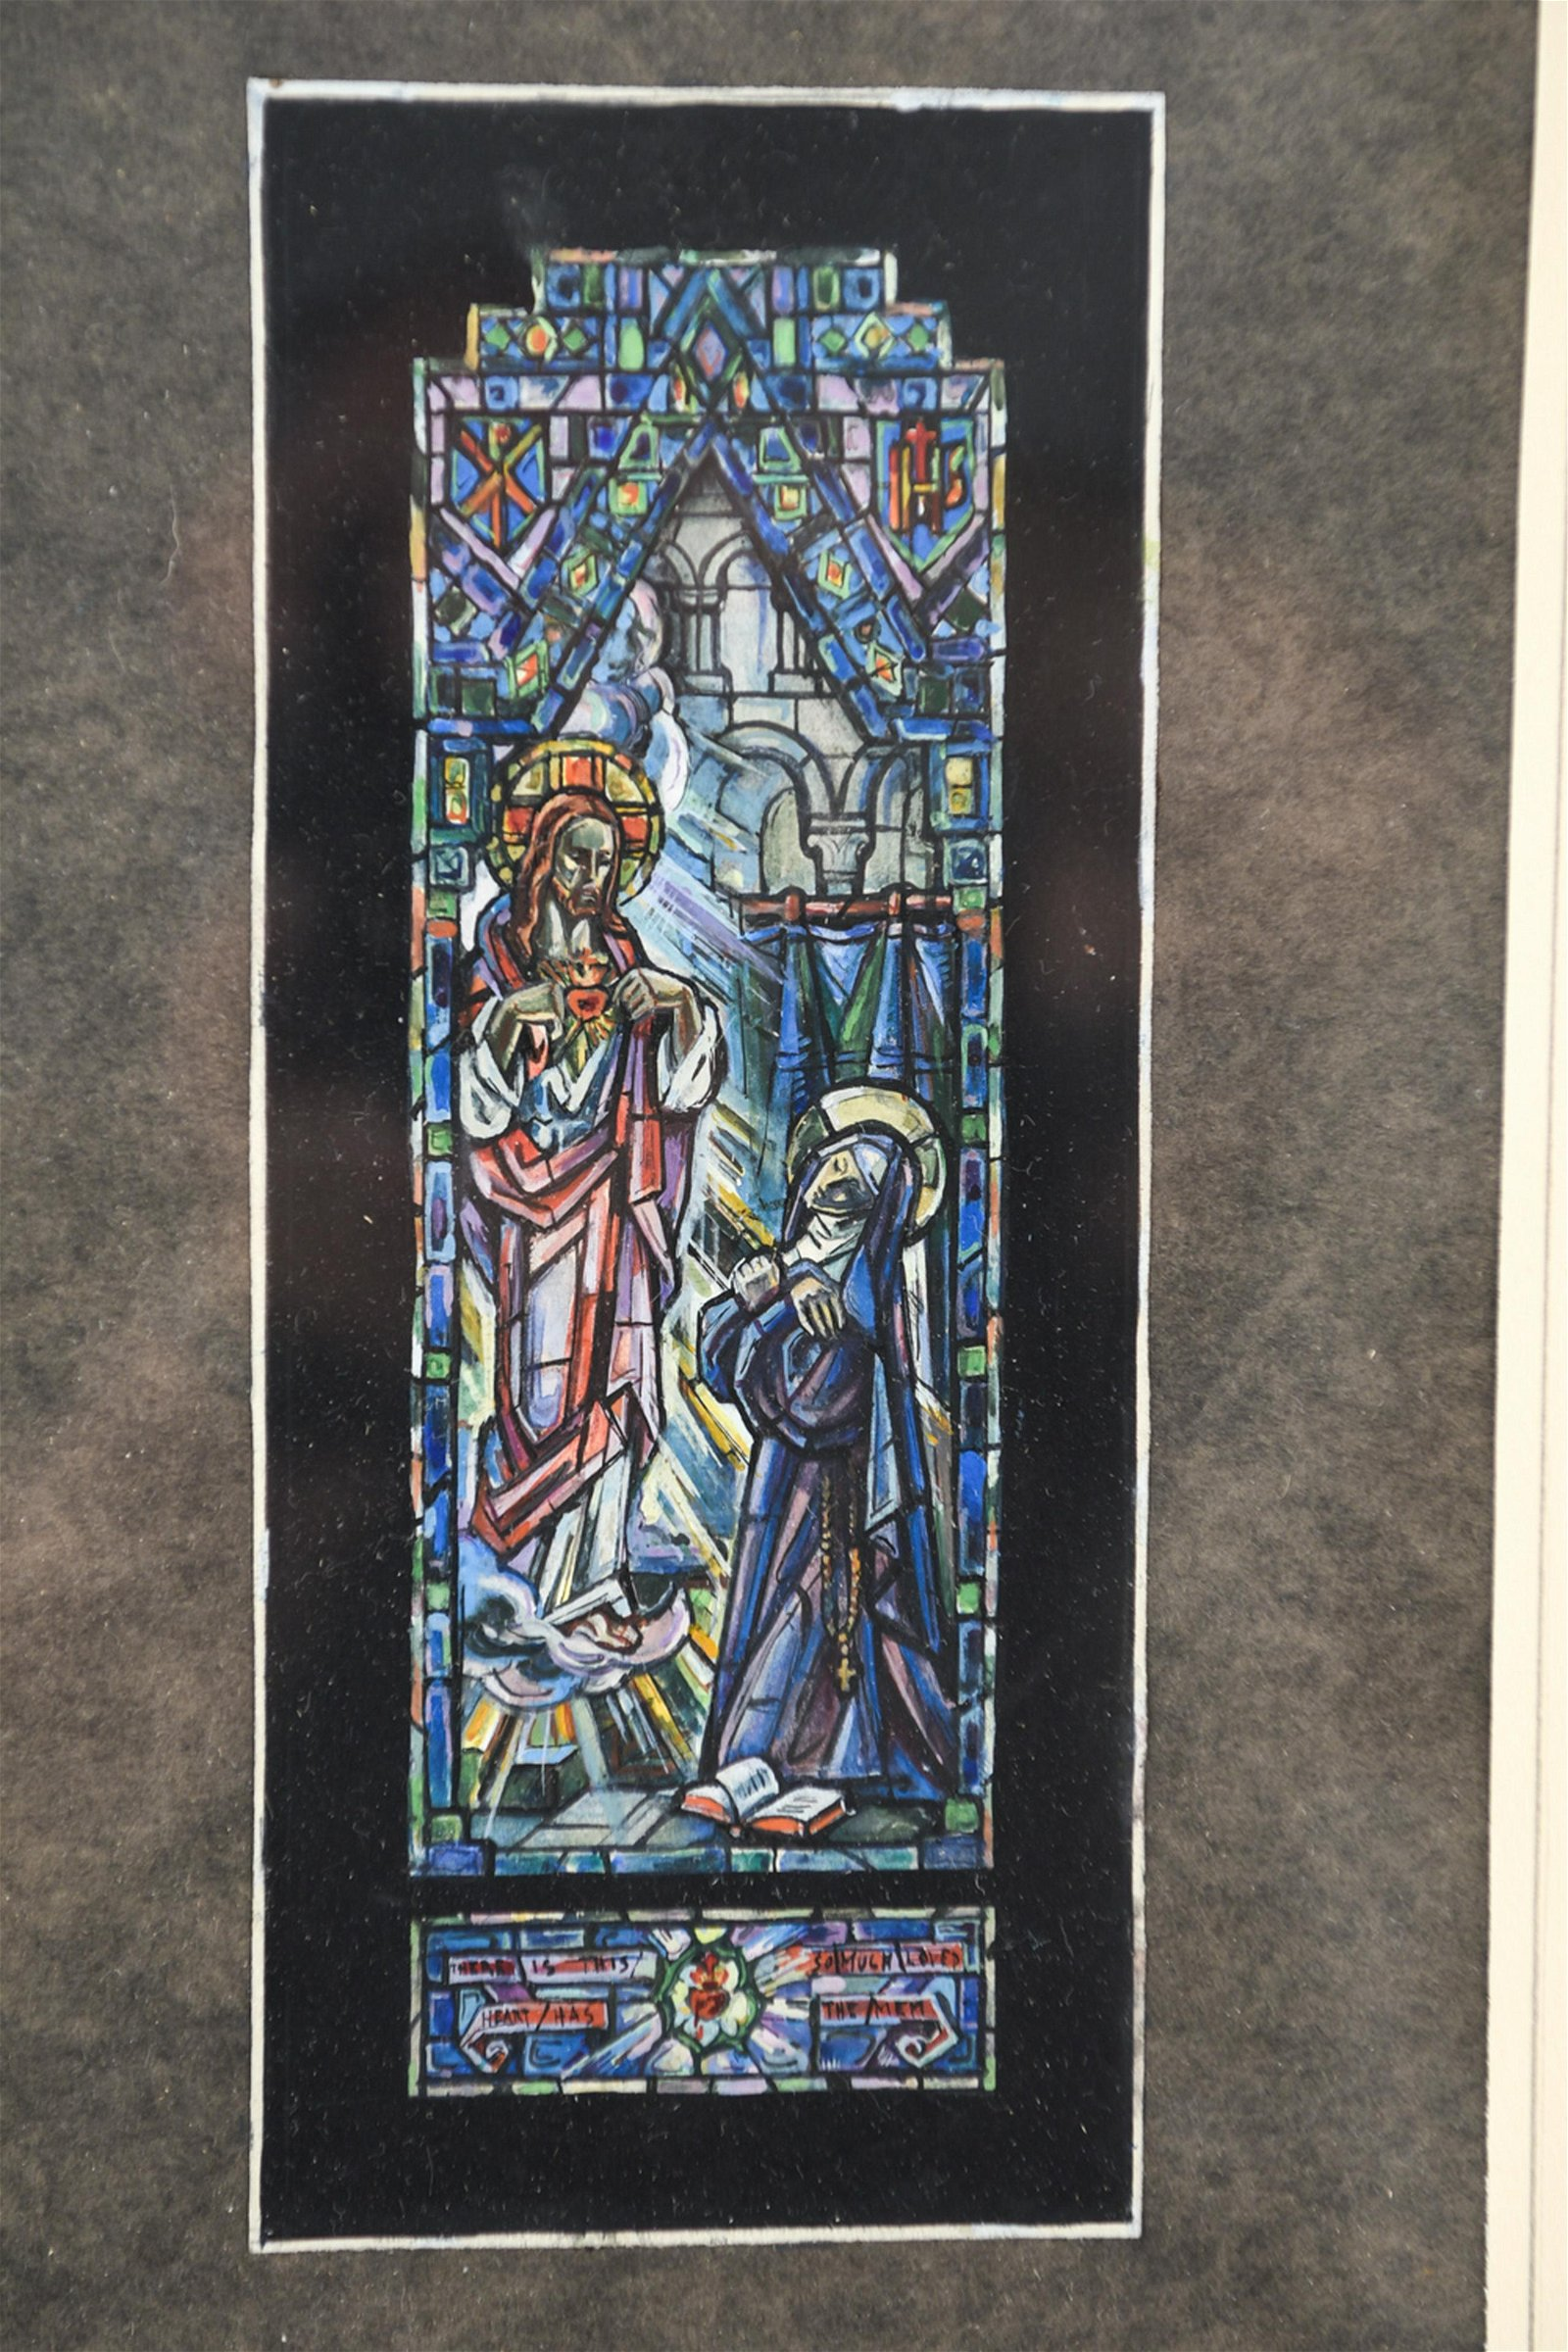 EARLY 1900'S STAINED GLASS WINDOW DESIGN